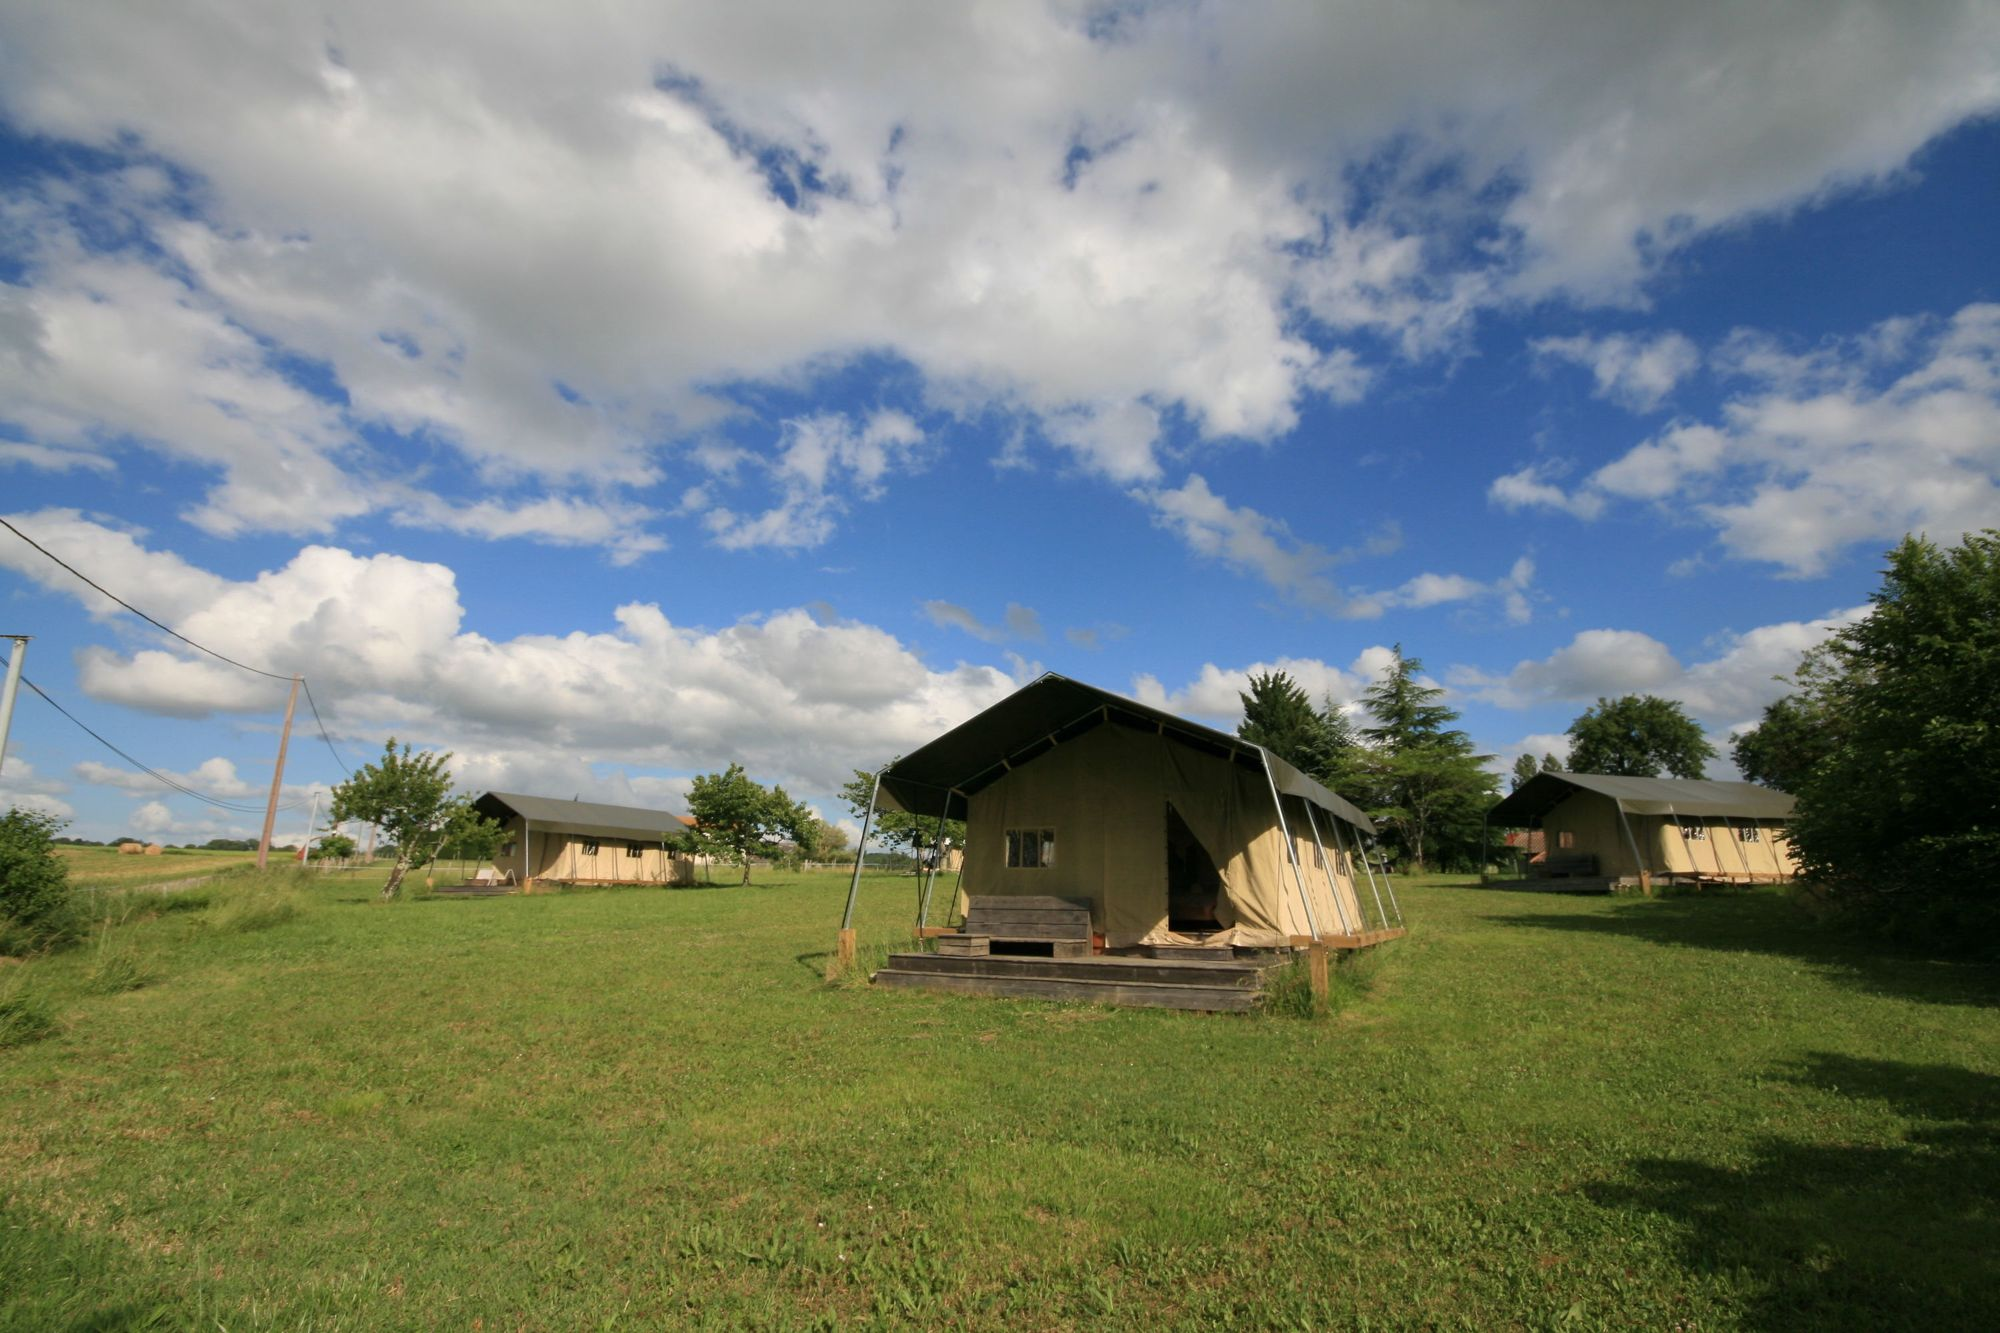 Safari Tents in France – Safari Tent Glamping Holidays in France